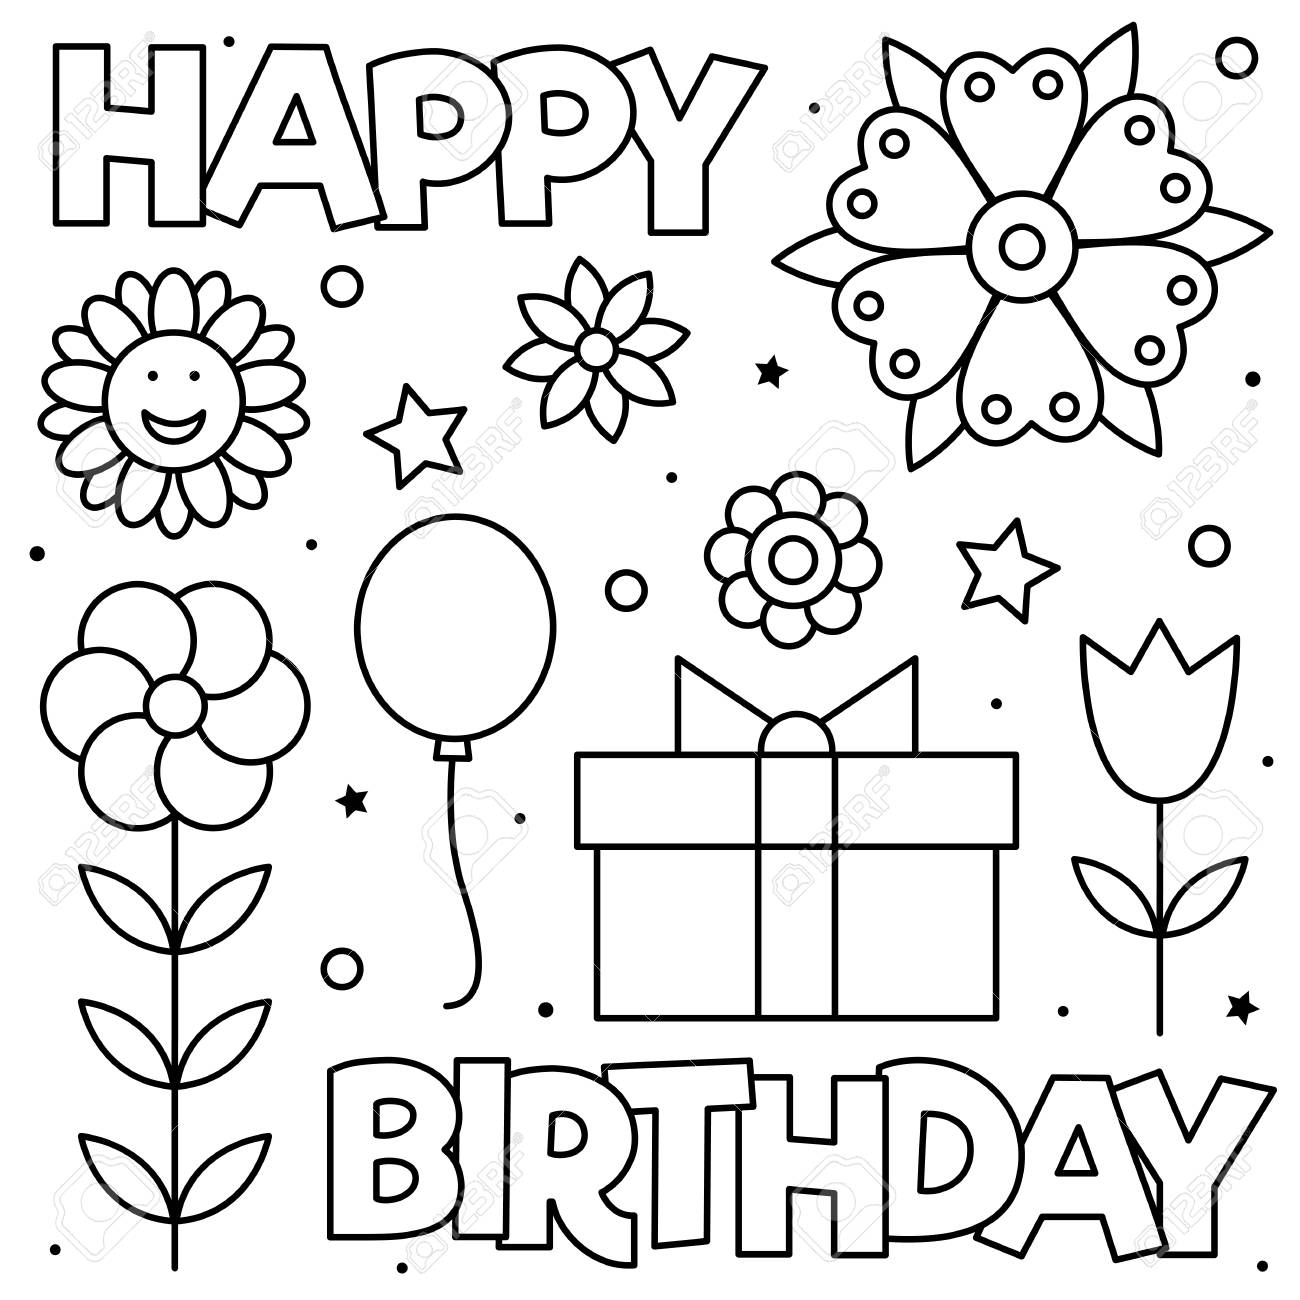 Happy Birthday Coloring Page Black And White Vector Illustration